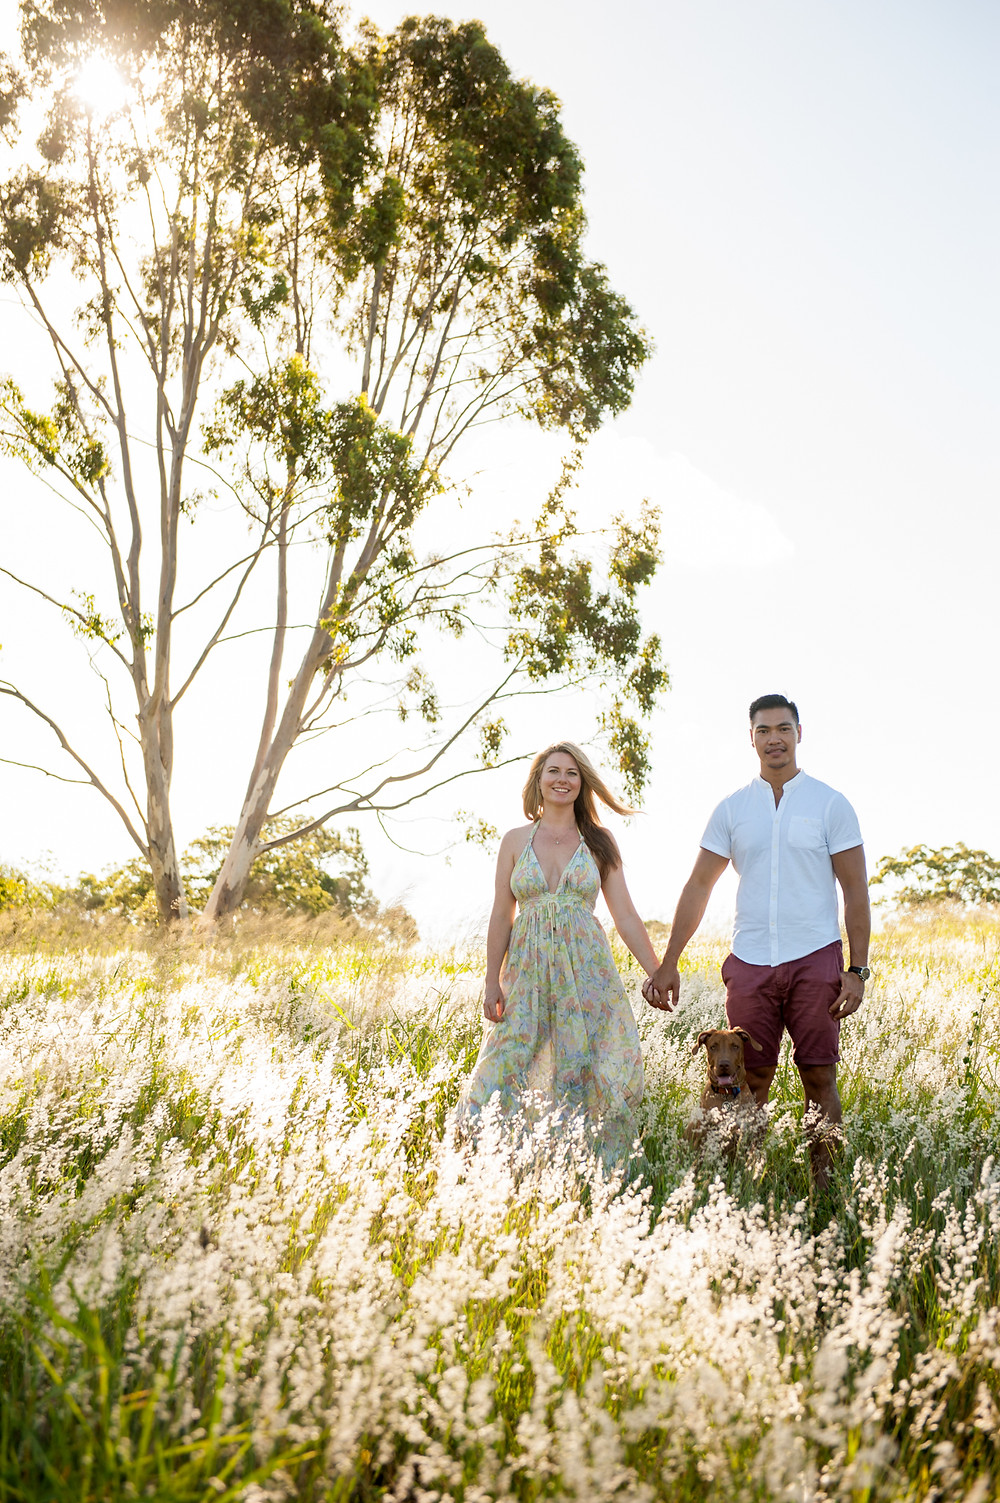 Jay Brosnan Photography | Sunshine Coast Wedding Photographer | Brisbane Wedding Photographer | Jay Brosnan Photography | JBP | Sunshine Coast Portrait Photographer | Brisbane Portrait Photographer | Couples Photographer | Engagement Shoot |